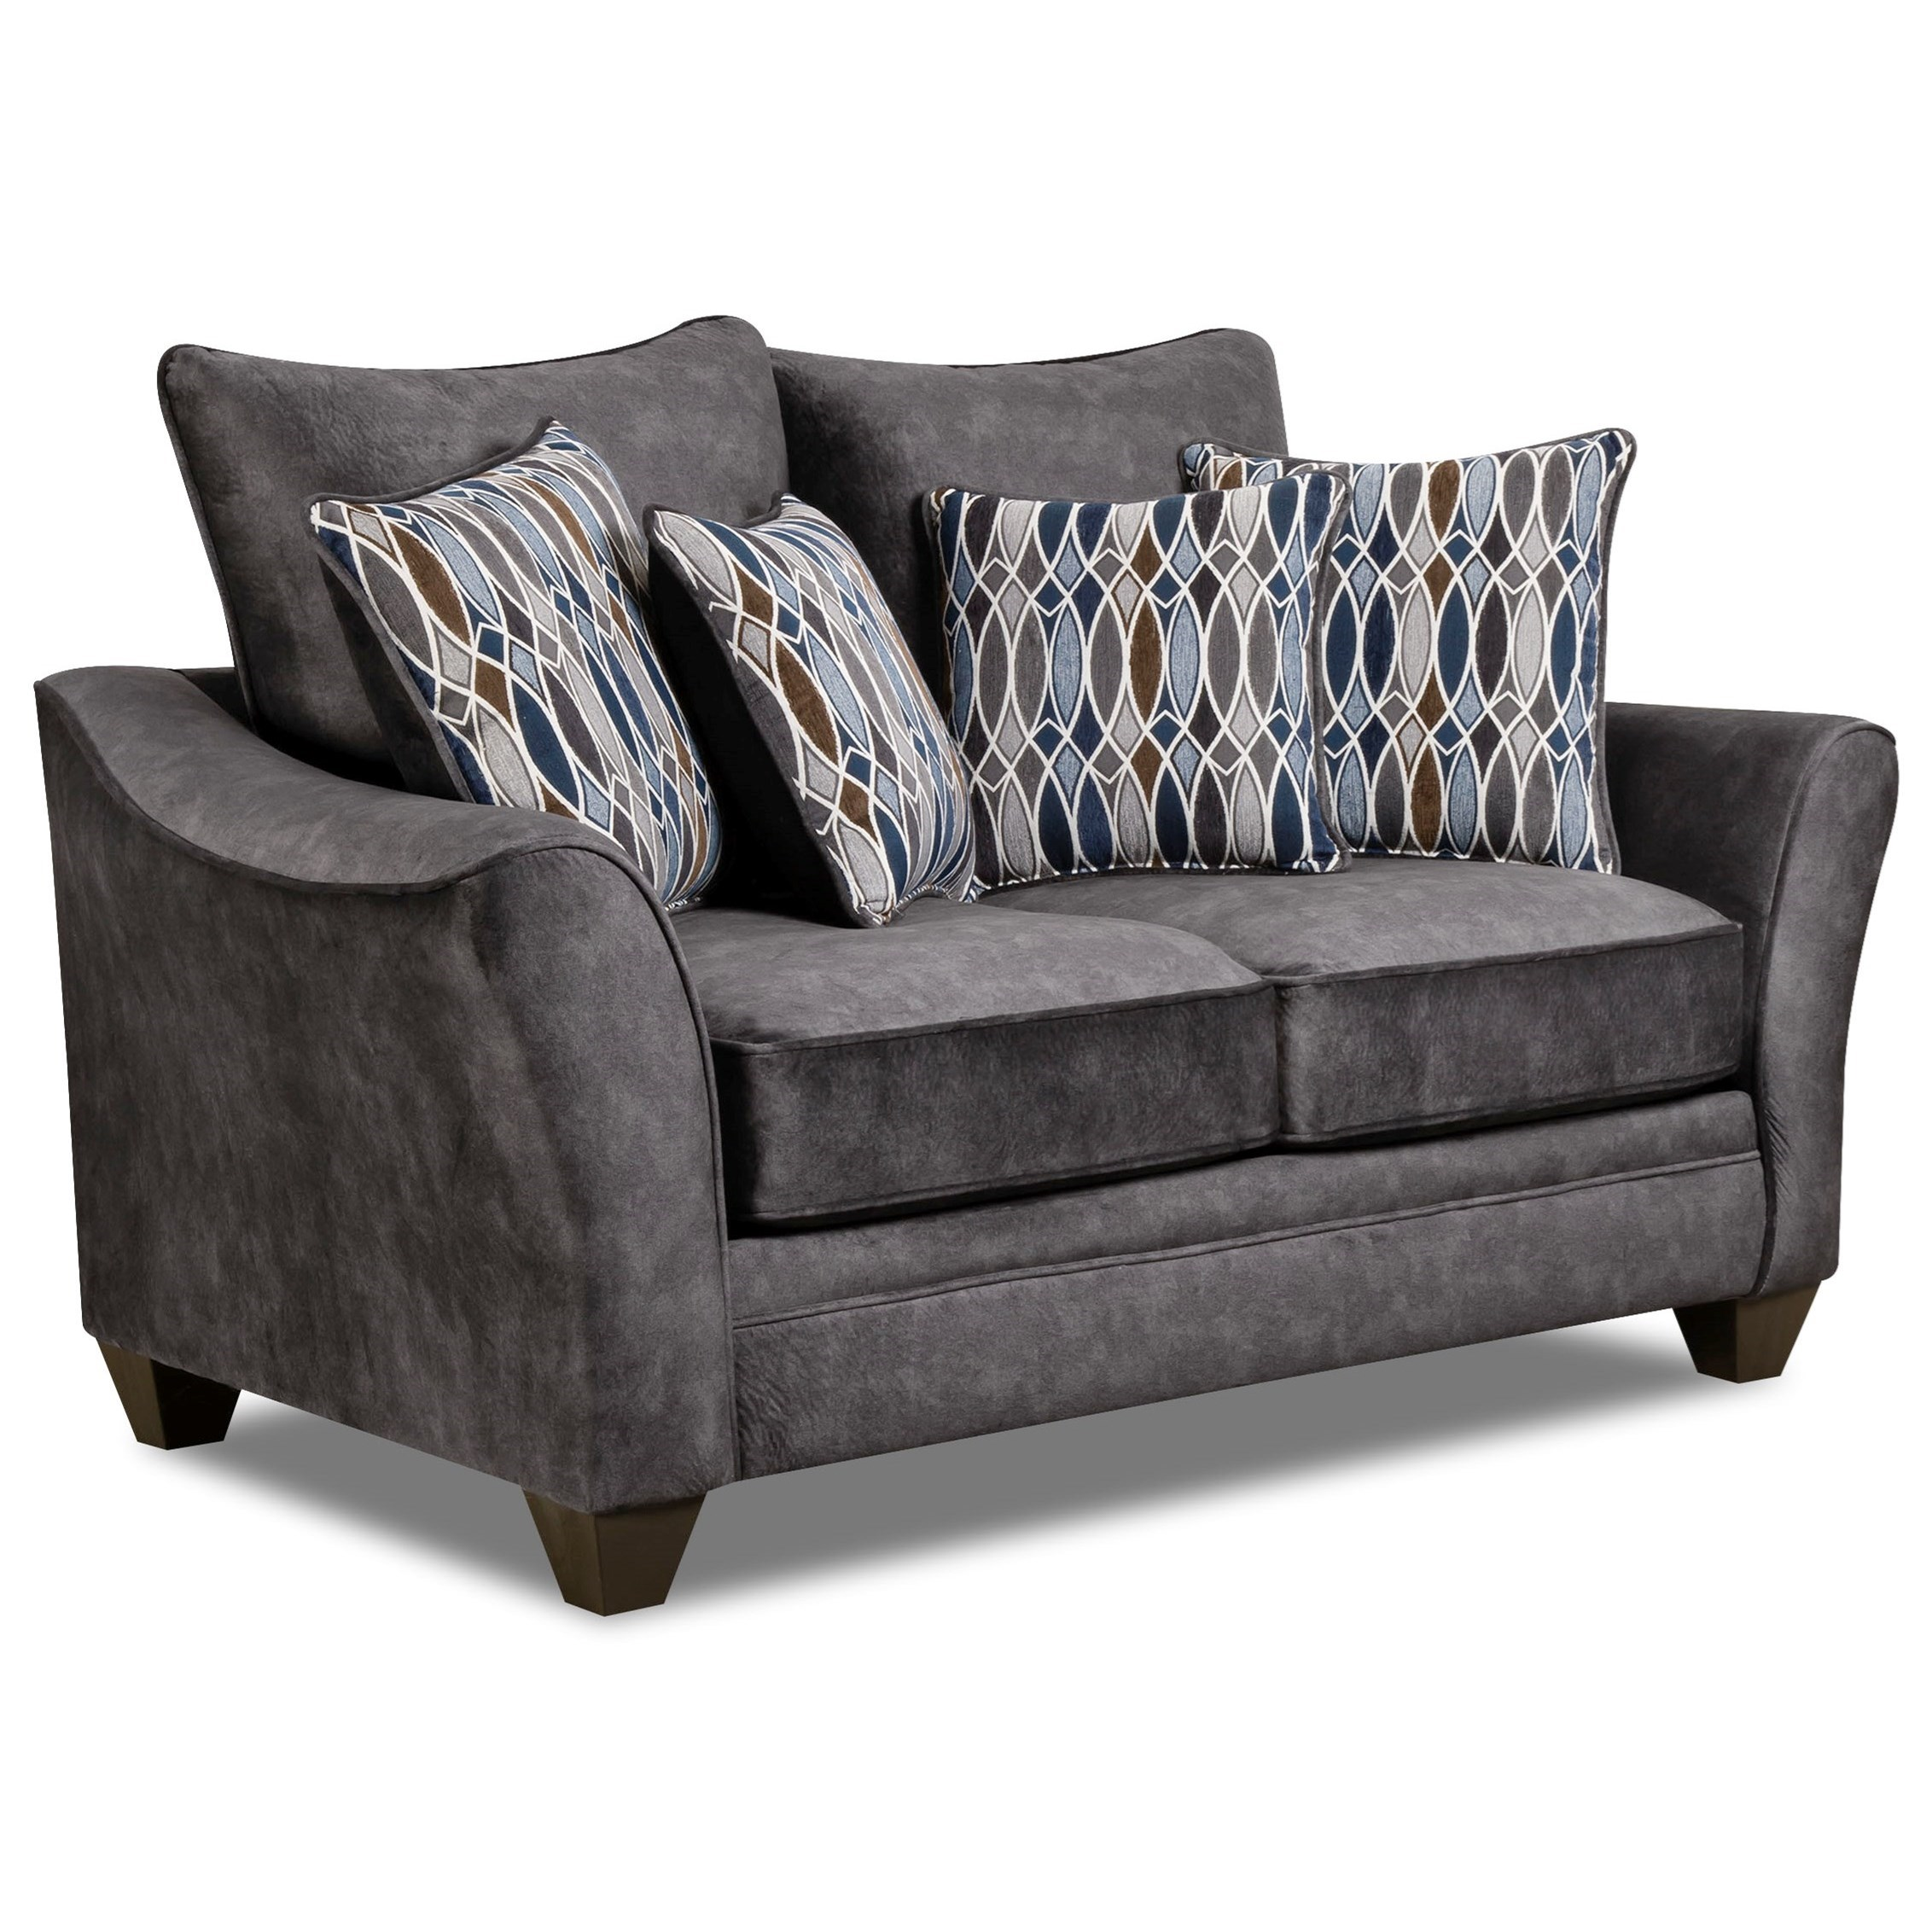 American Furniture 3850 Loveseat - Item Number: 3852-Athena-Grey